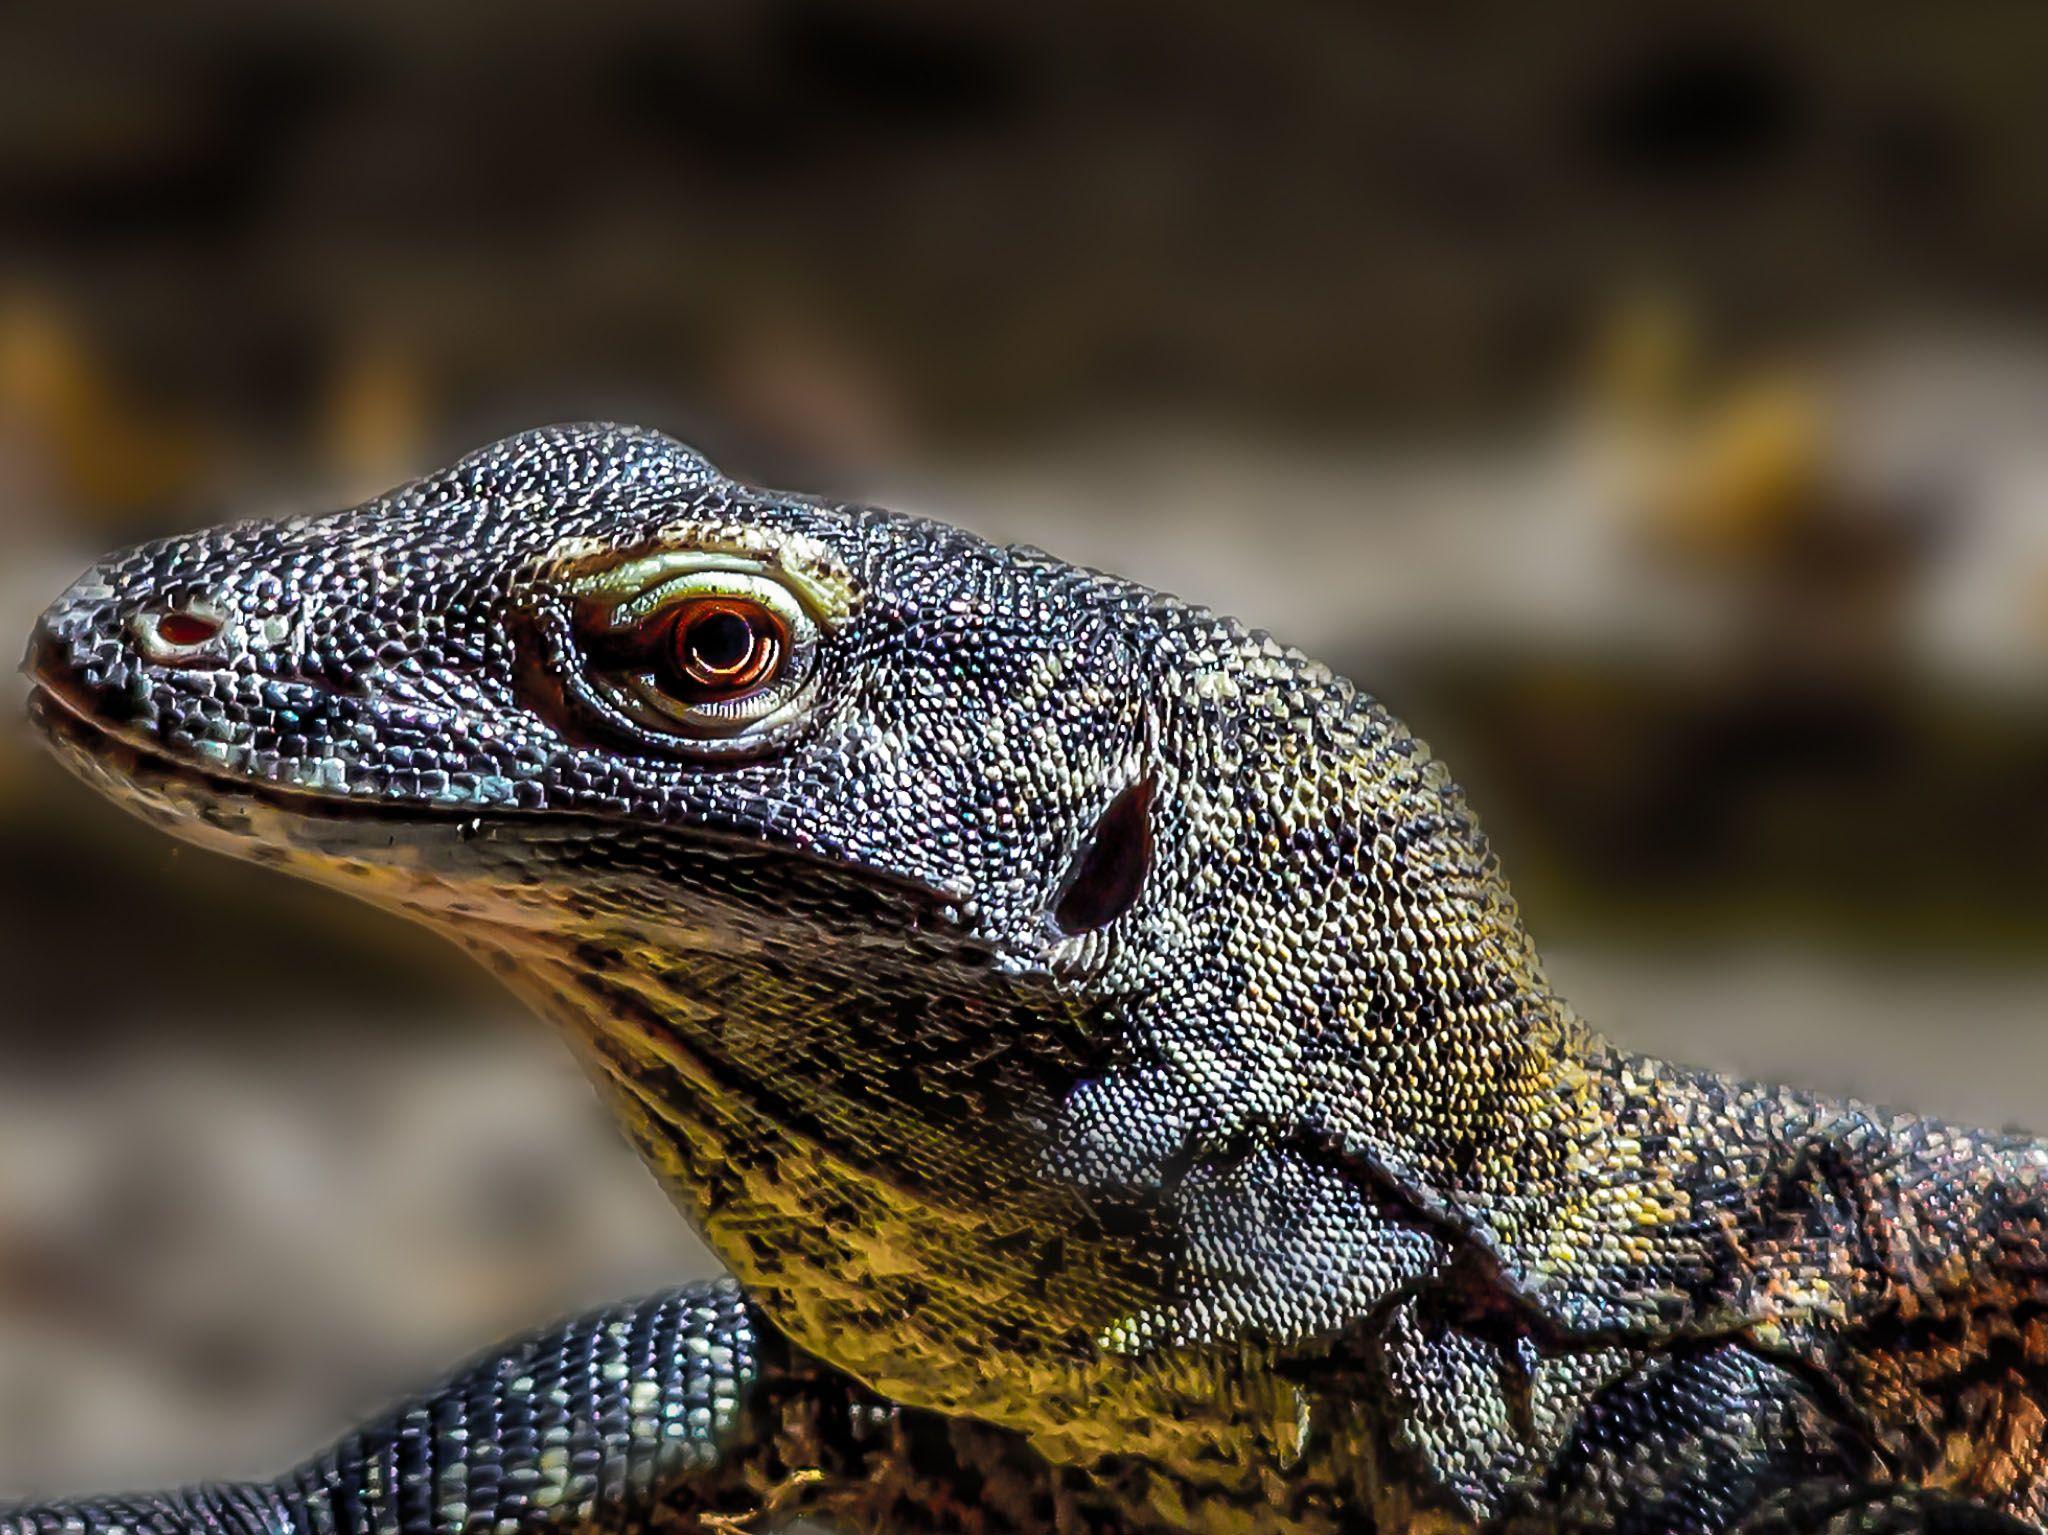 There is no parental care for baby Komodo dragons. This image is from Asia's Wild Secrets. [Photo of the day - March 2021]